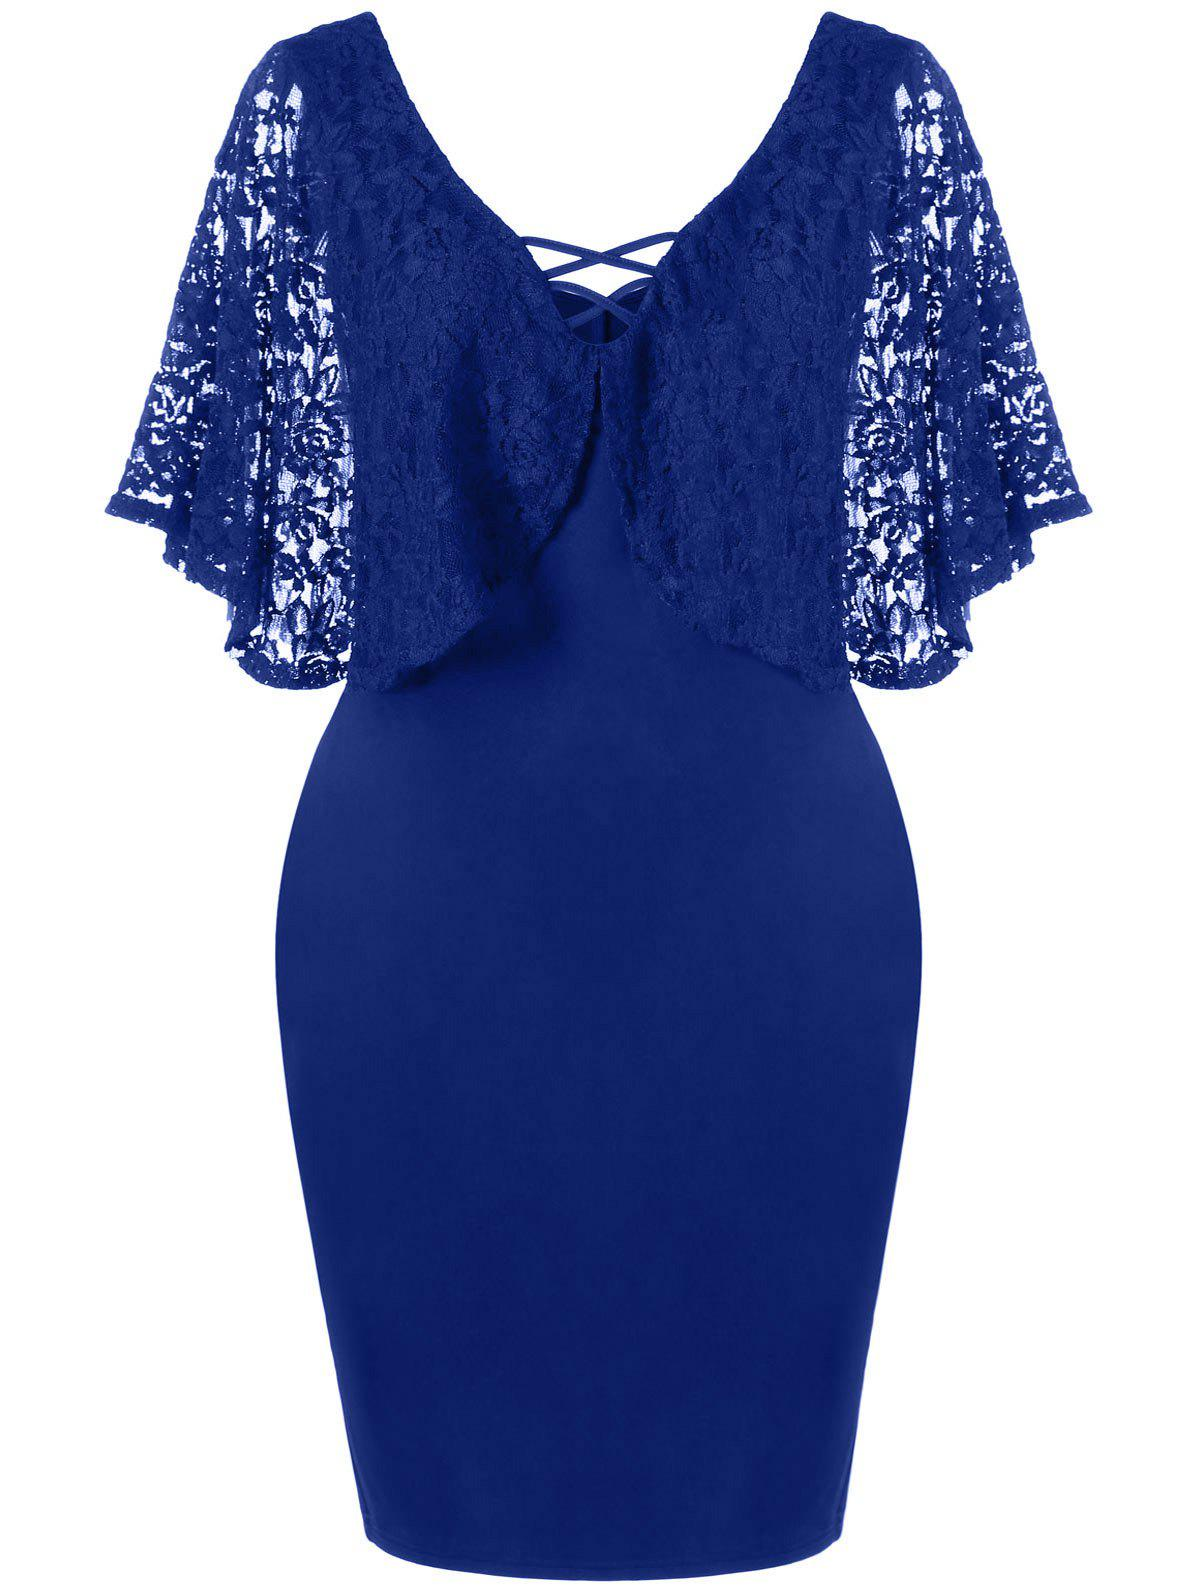 Lace Batwing Sleeve Plus Size Bodycon DressWOMEN<br><br>Size: 4XL; Color: DEEP BLUE; Style: Brief; Material: Polyester,Spandex; Silhouette: Sheath; Dresses Length: Knee-Length; Neckline: V-Neck; Sleeve Type: Batwing Sleeve; Sleeve Length: Short Sleeves; Waist: Natural; Embellishment: Criss-Cross,Lace; Pattern Type: Solid Color; Elasticity: Elastic; With Belt: No; Season: Summer; Weight: 0.3700kg; Package Contents: 1 x Dress;